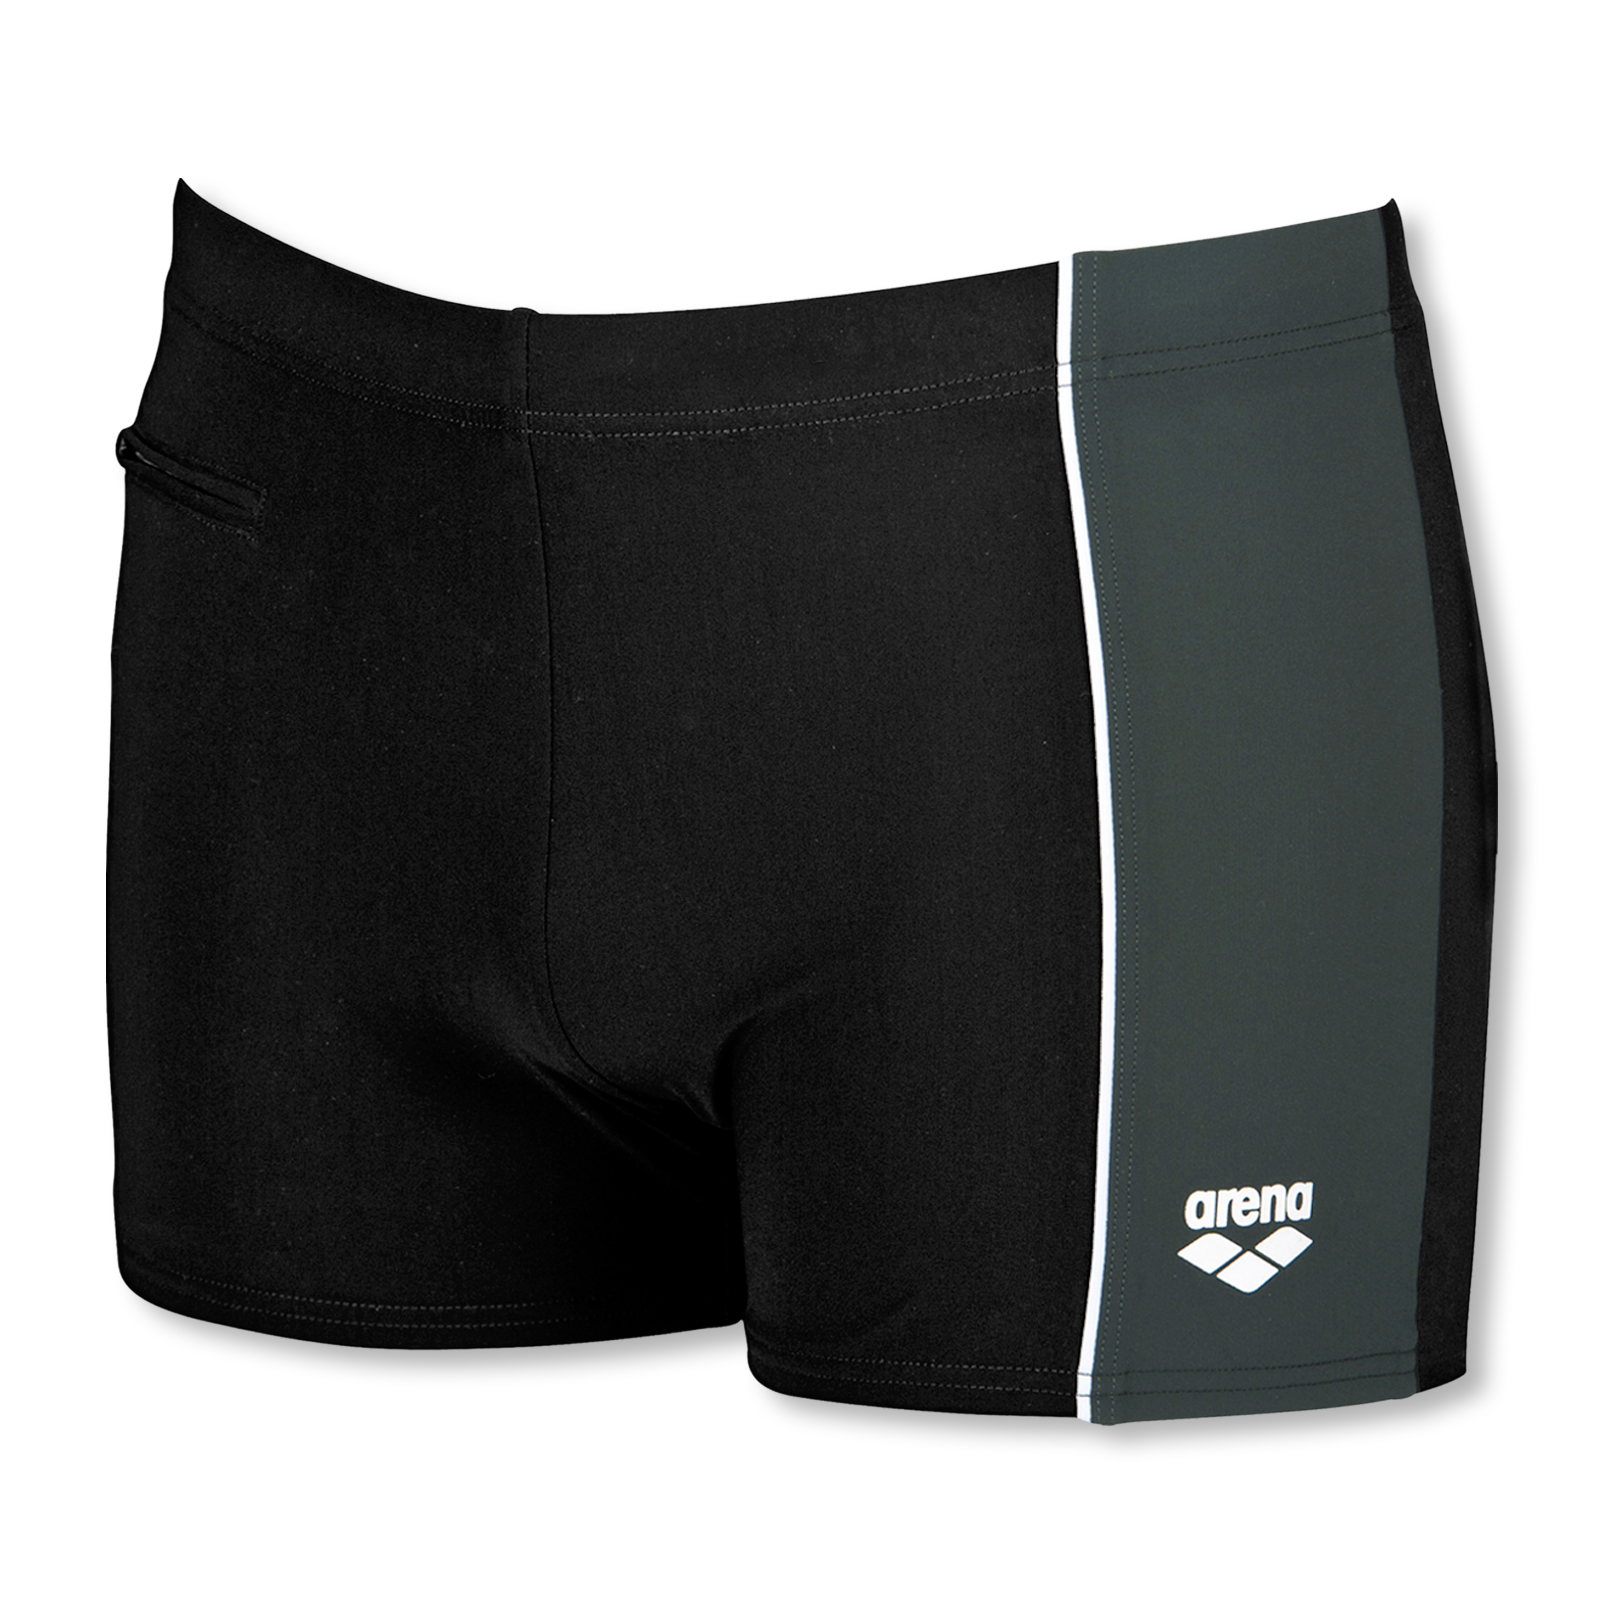 Arena Herren Badehose Sensitive Panel Short 1B306 M L XL 2XL 3XL in black / asphalt / white